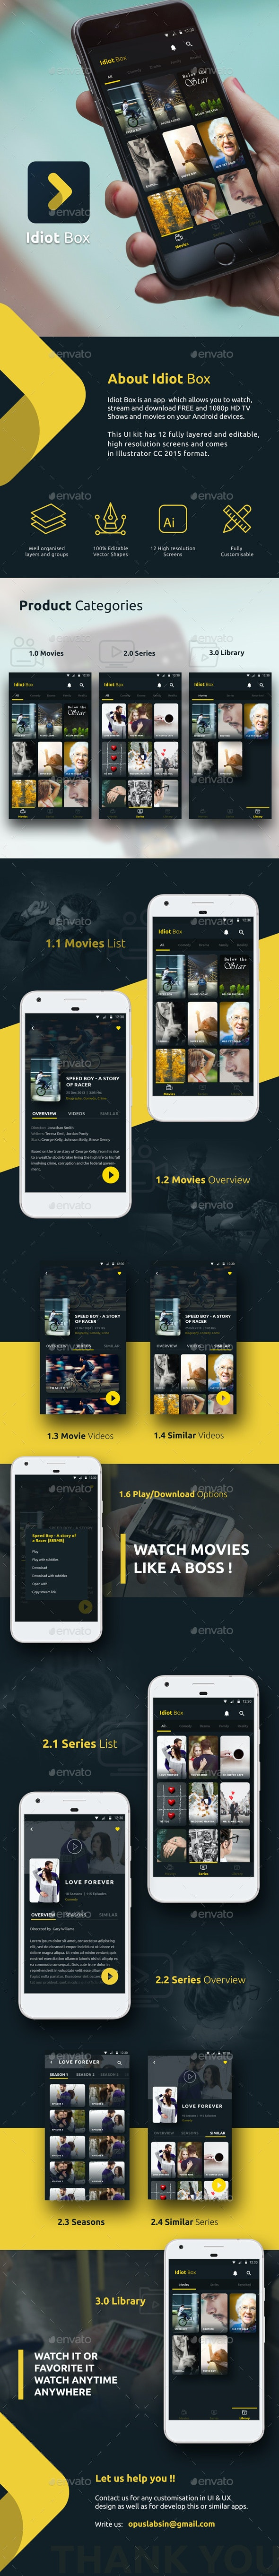 Online Movie / Video Streaming App | Idiot Box - User Interfaces Web Elements